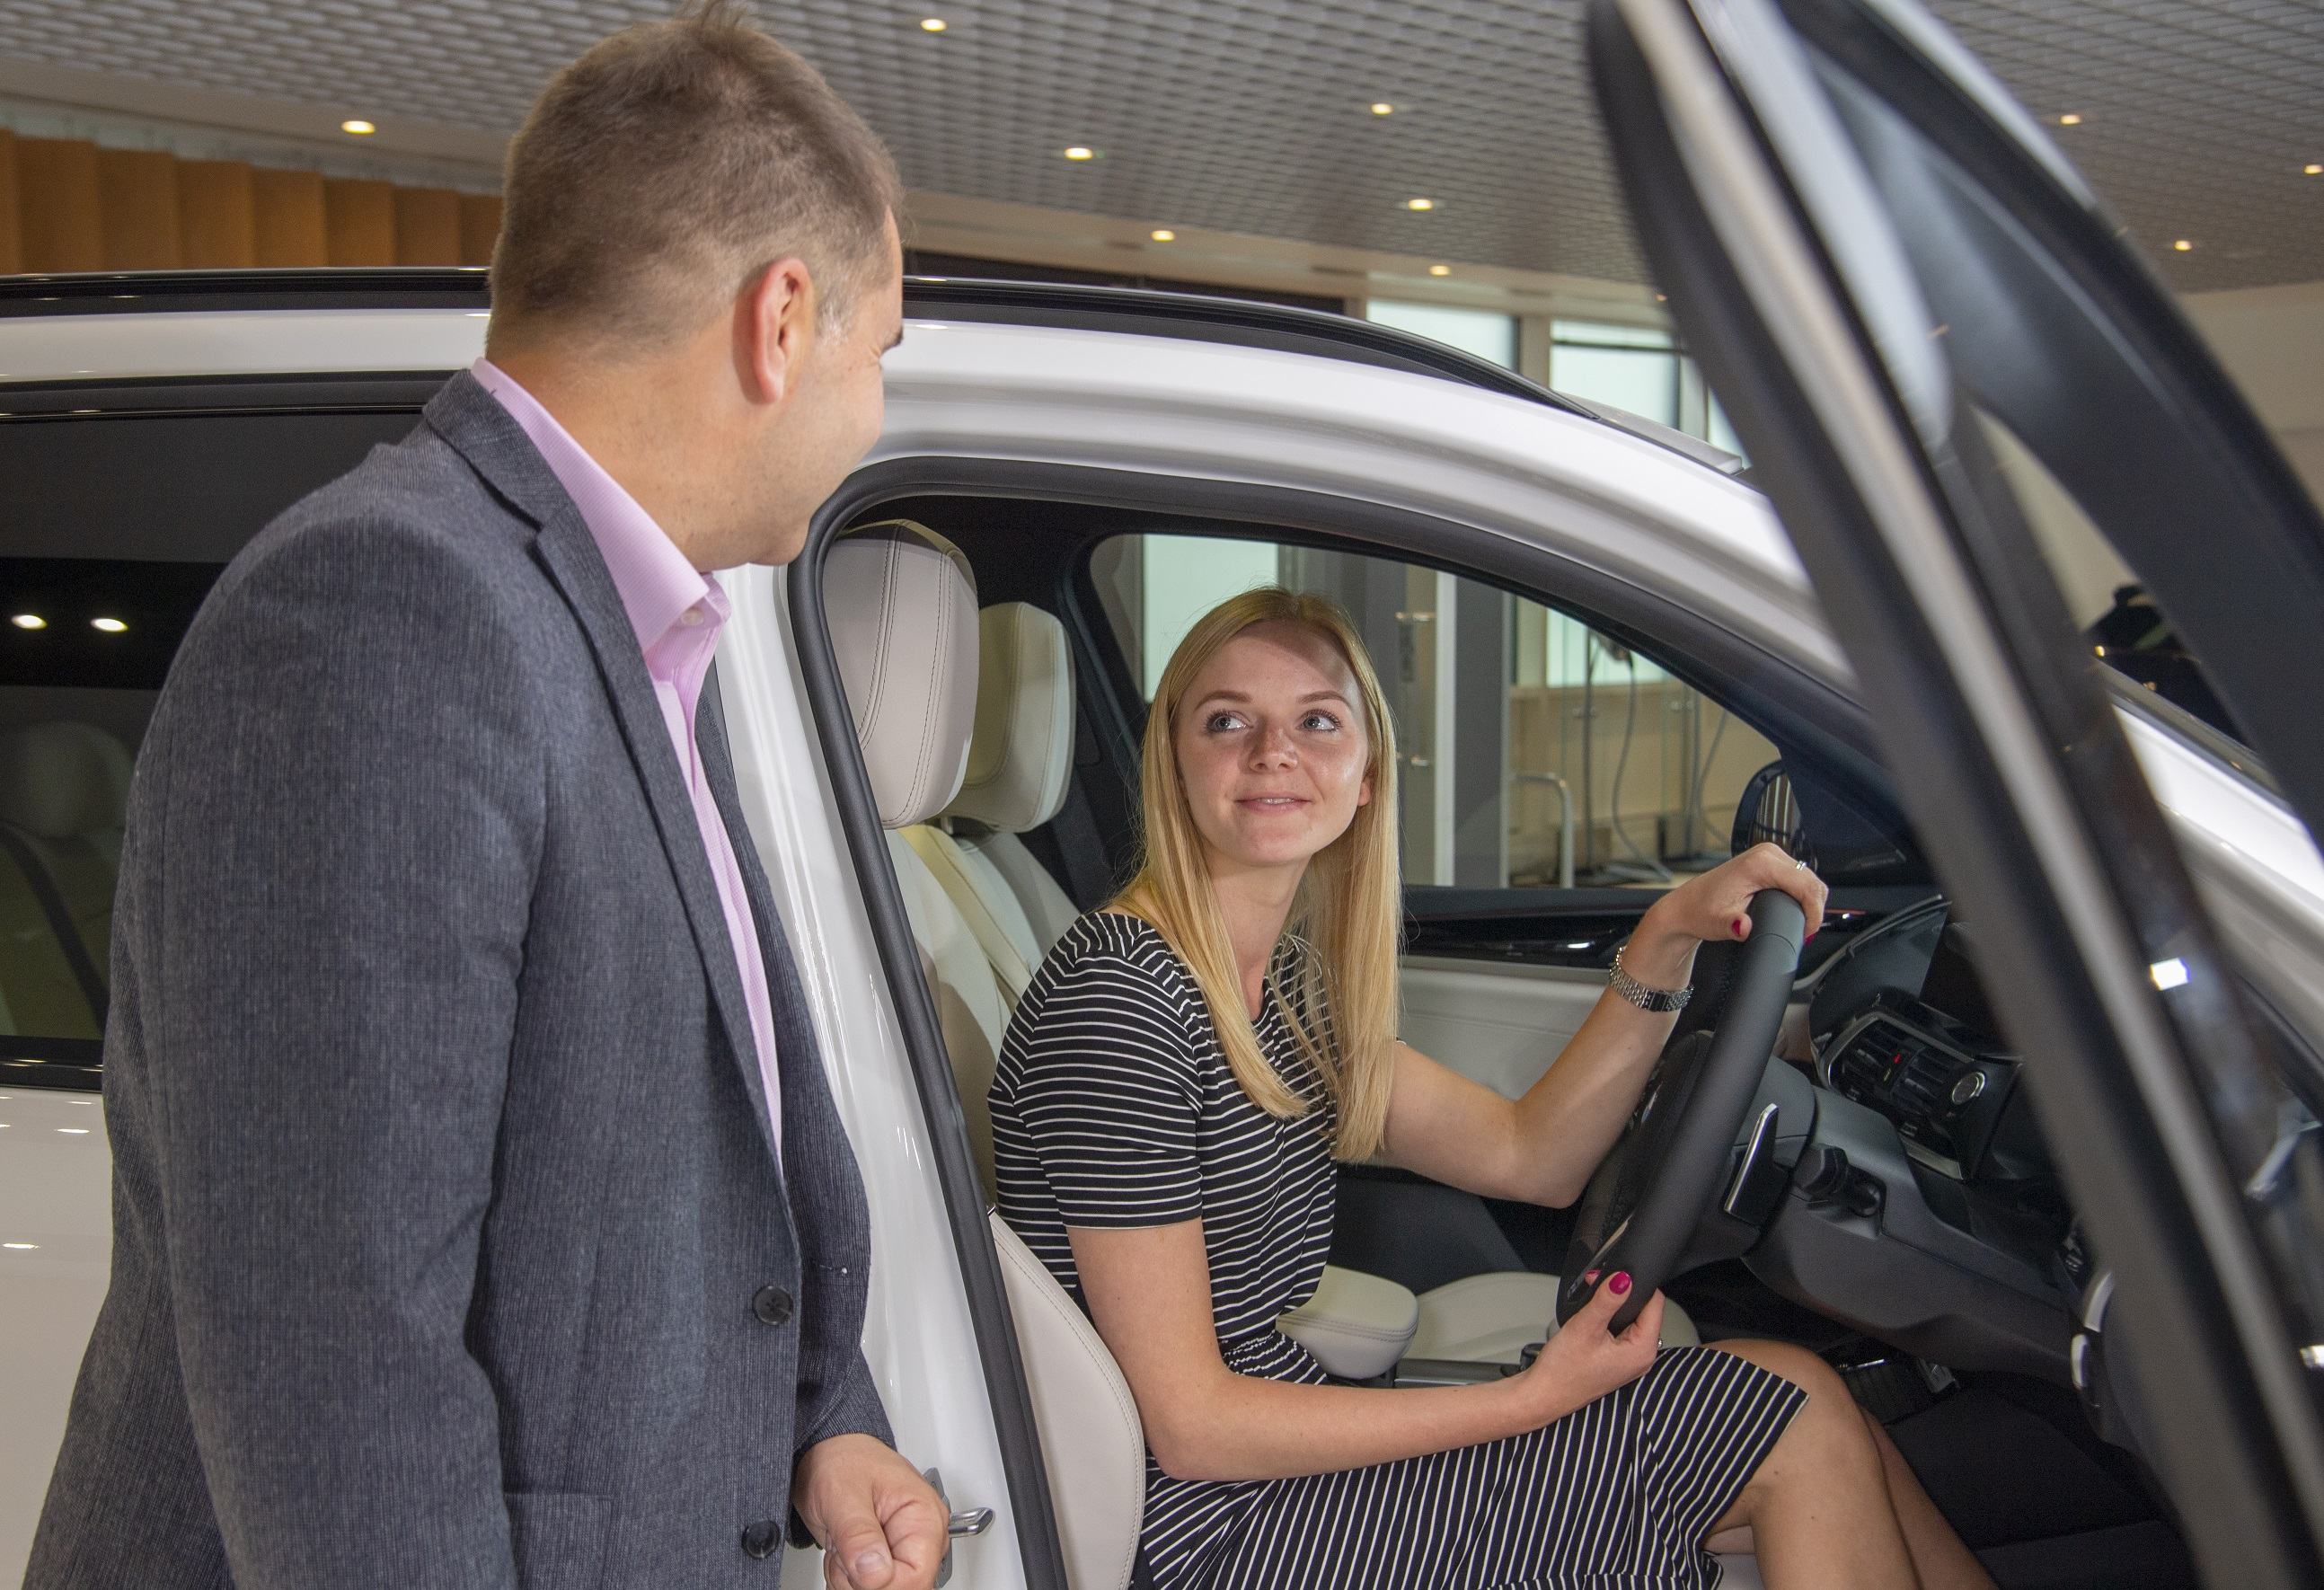 UK automotive industry calls for reopening of showrooms